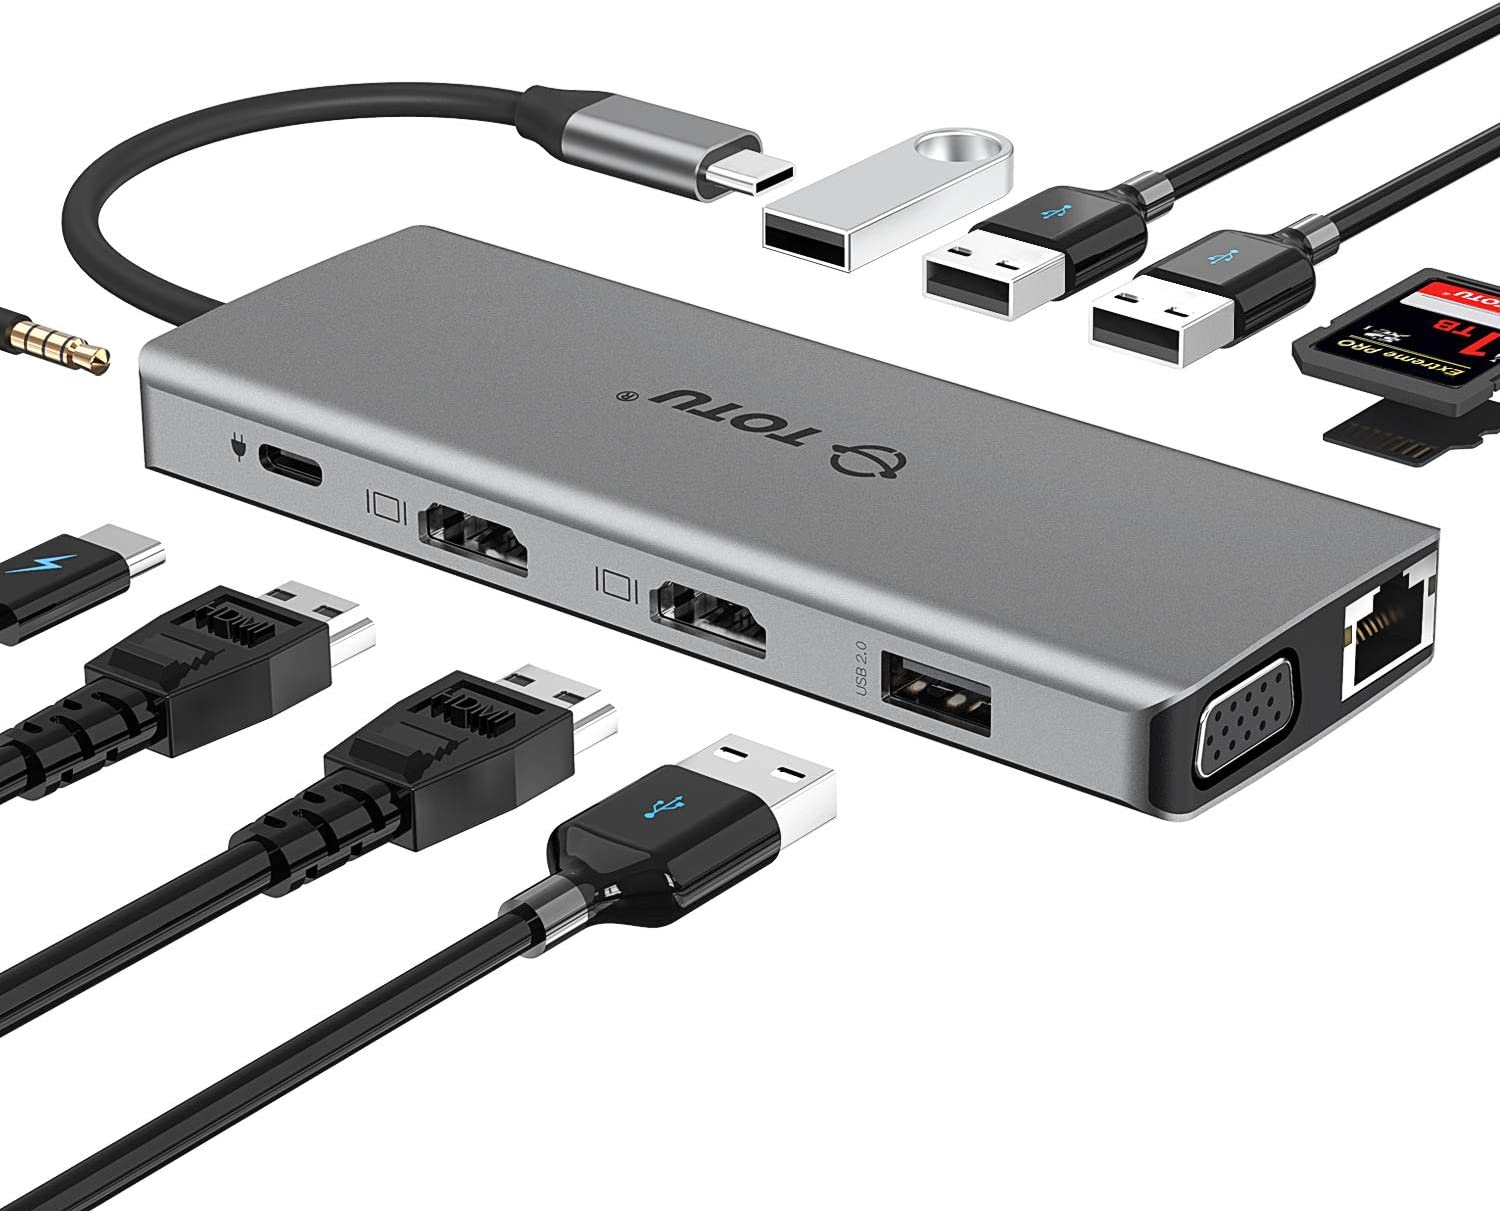 USB C Hub, TOTU 13-in-1 Type C Hub with Ethernet, 4K USB C to 2 HDMI, VGA, 2 USB 3.0, 2 USB 2.0, 100W PD, SD/TF Cards Reader, Mic/Audio Docking Station for MacBook Pro Air XPS and Other USB-C Laptops